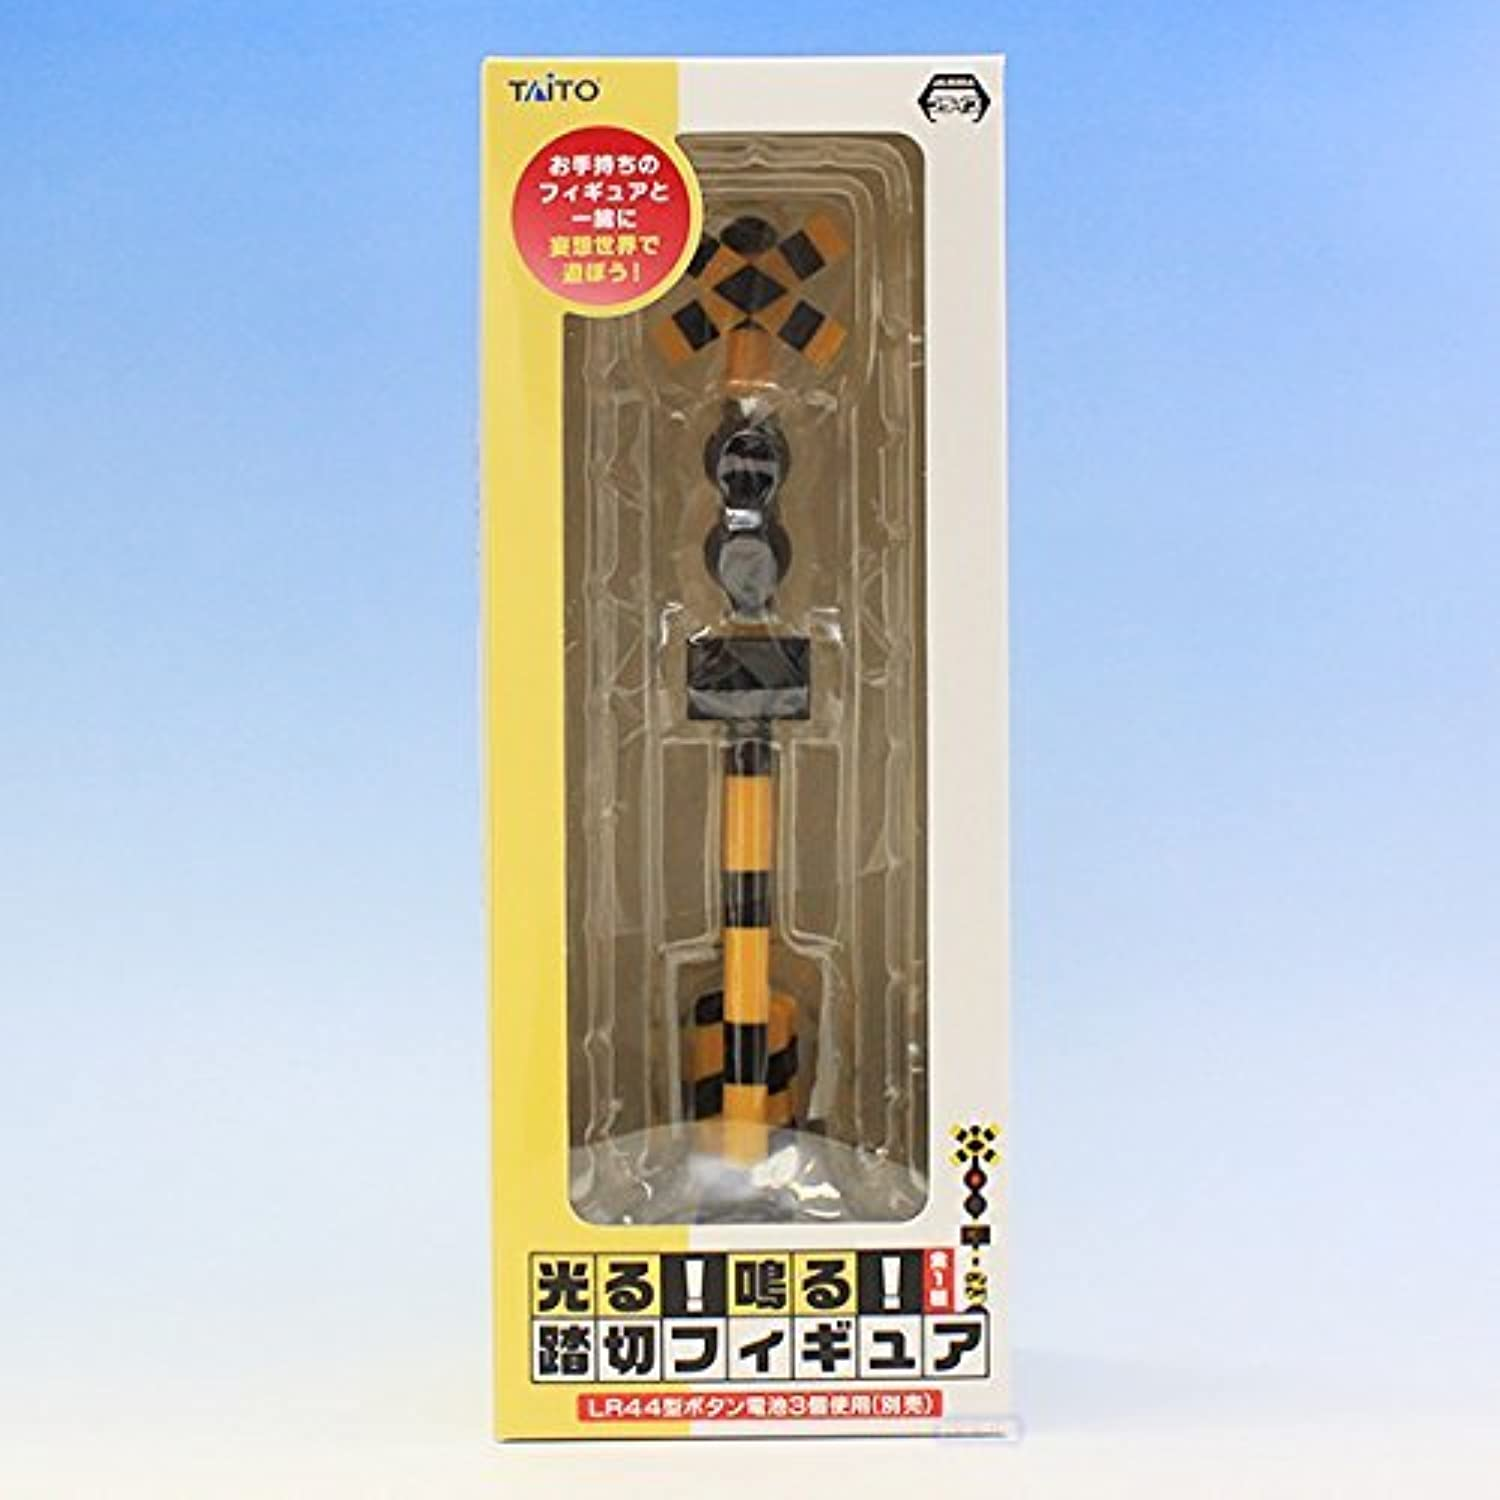 Shine  Sound  Railway crossing figure Character Collection model railroad diorama Goods Prize Taito